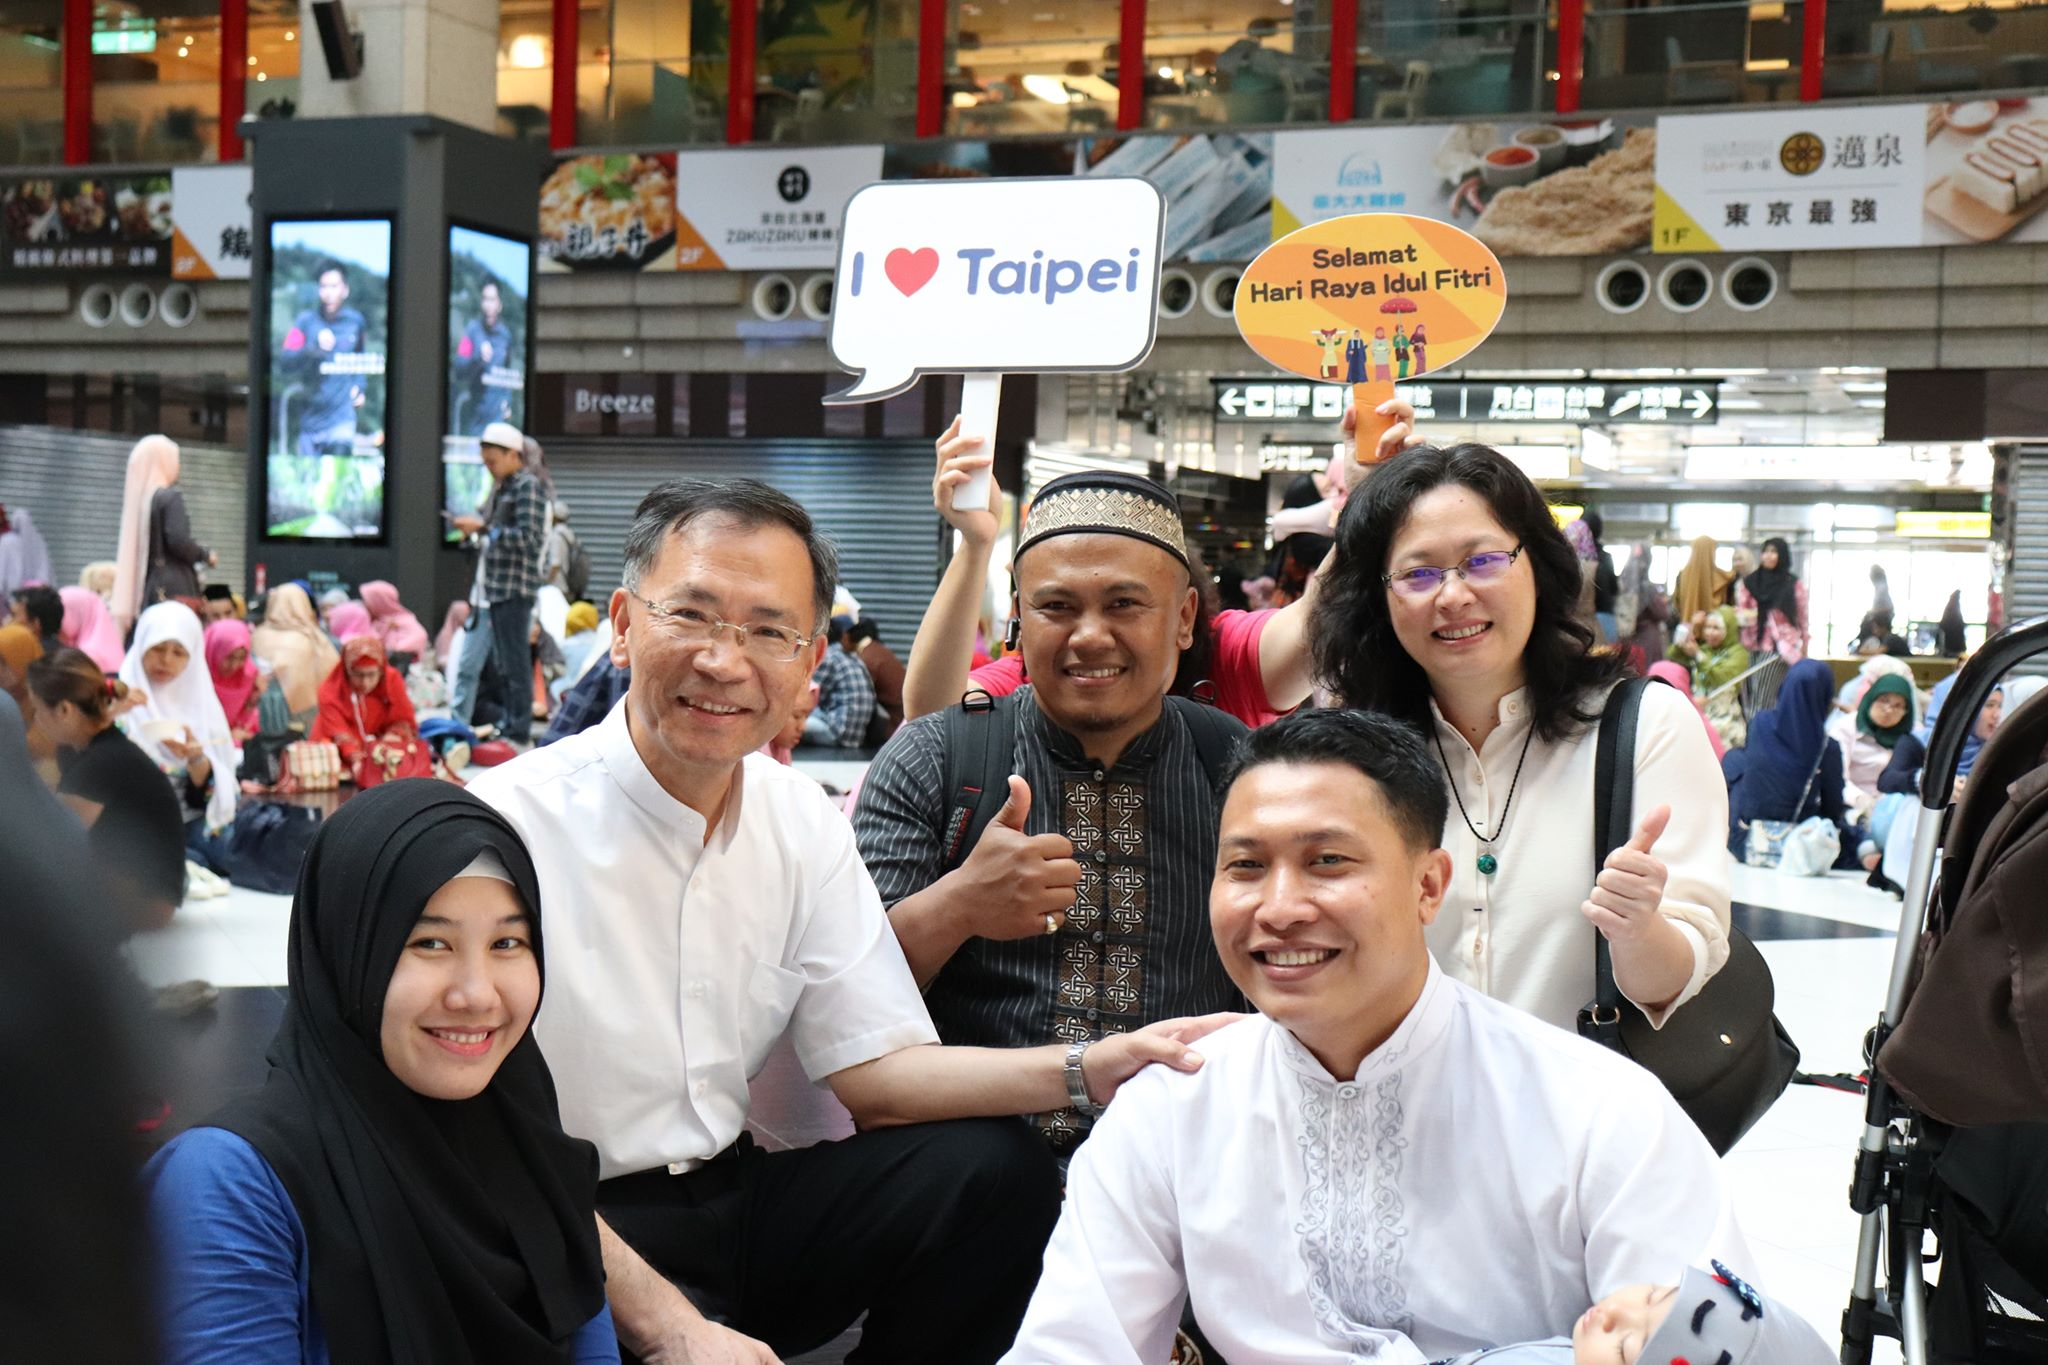 Taipei City Deputy Mayor Tsai and DOL Commissioner Lai take group photos with Indonesian students and their families.